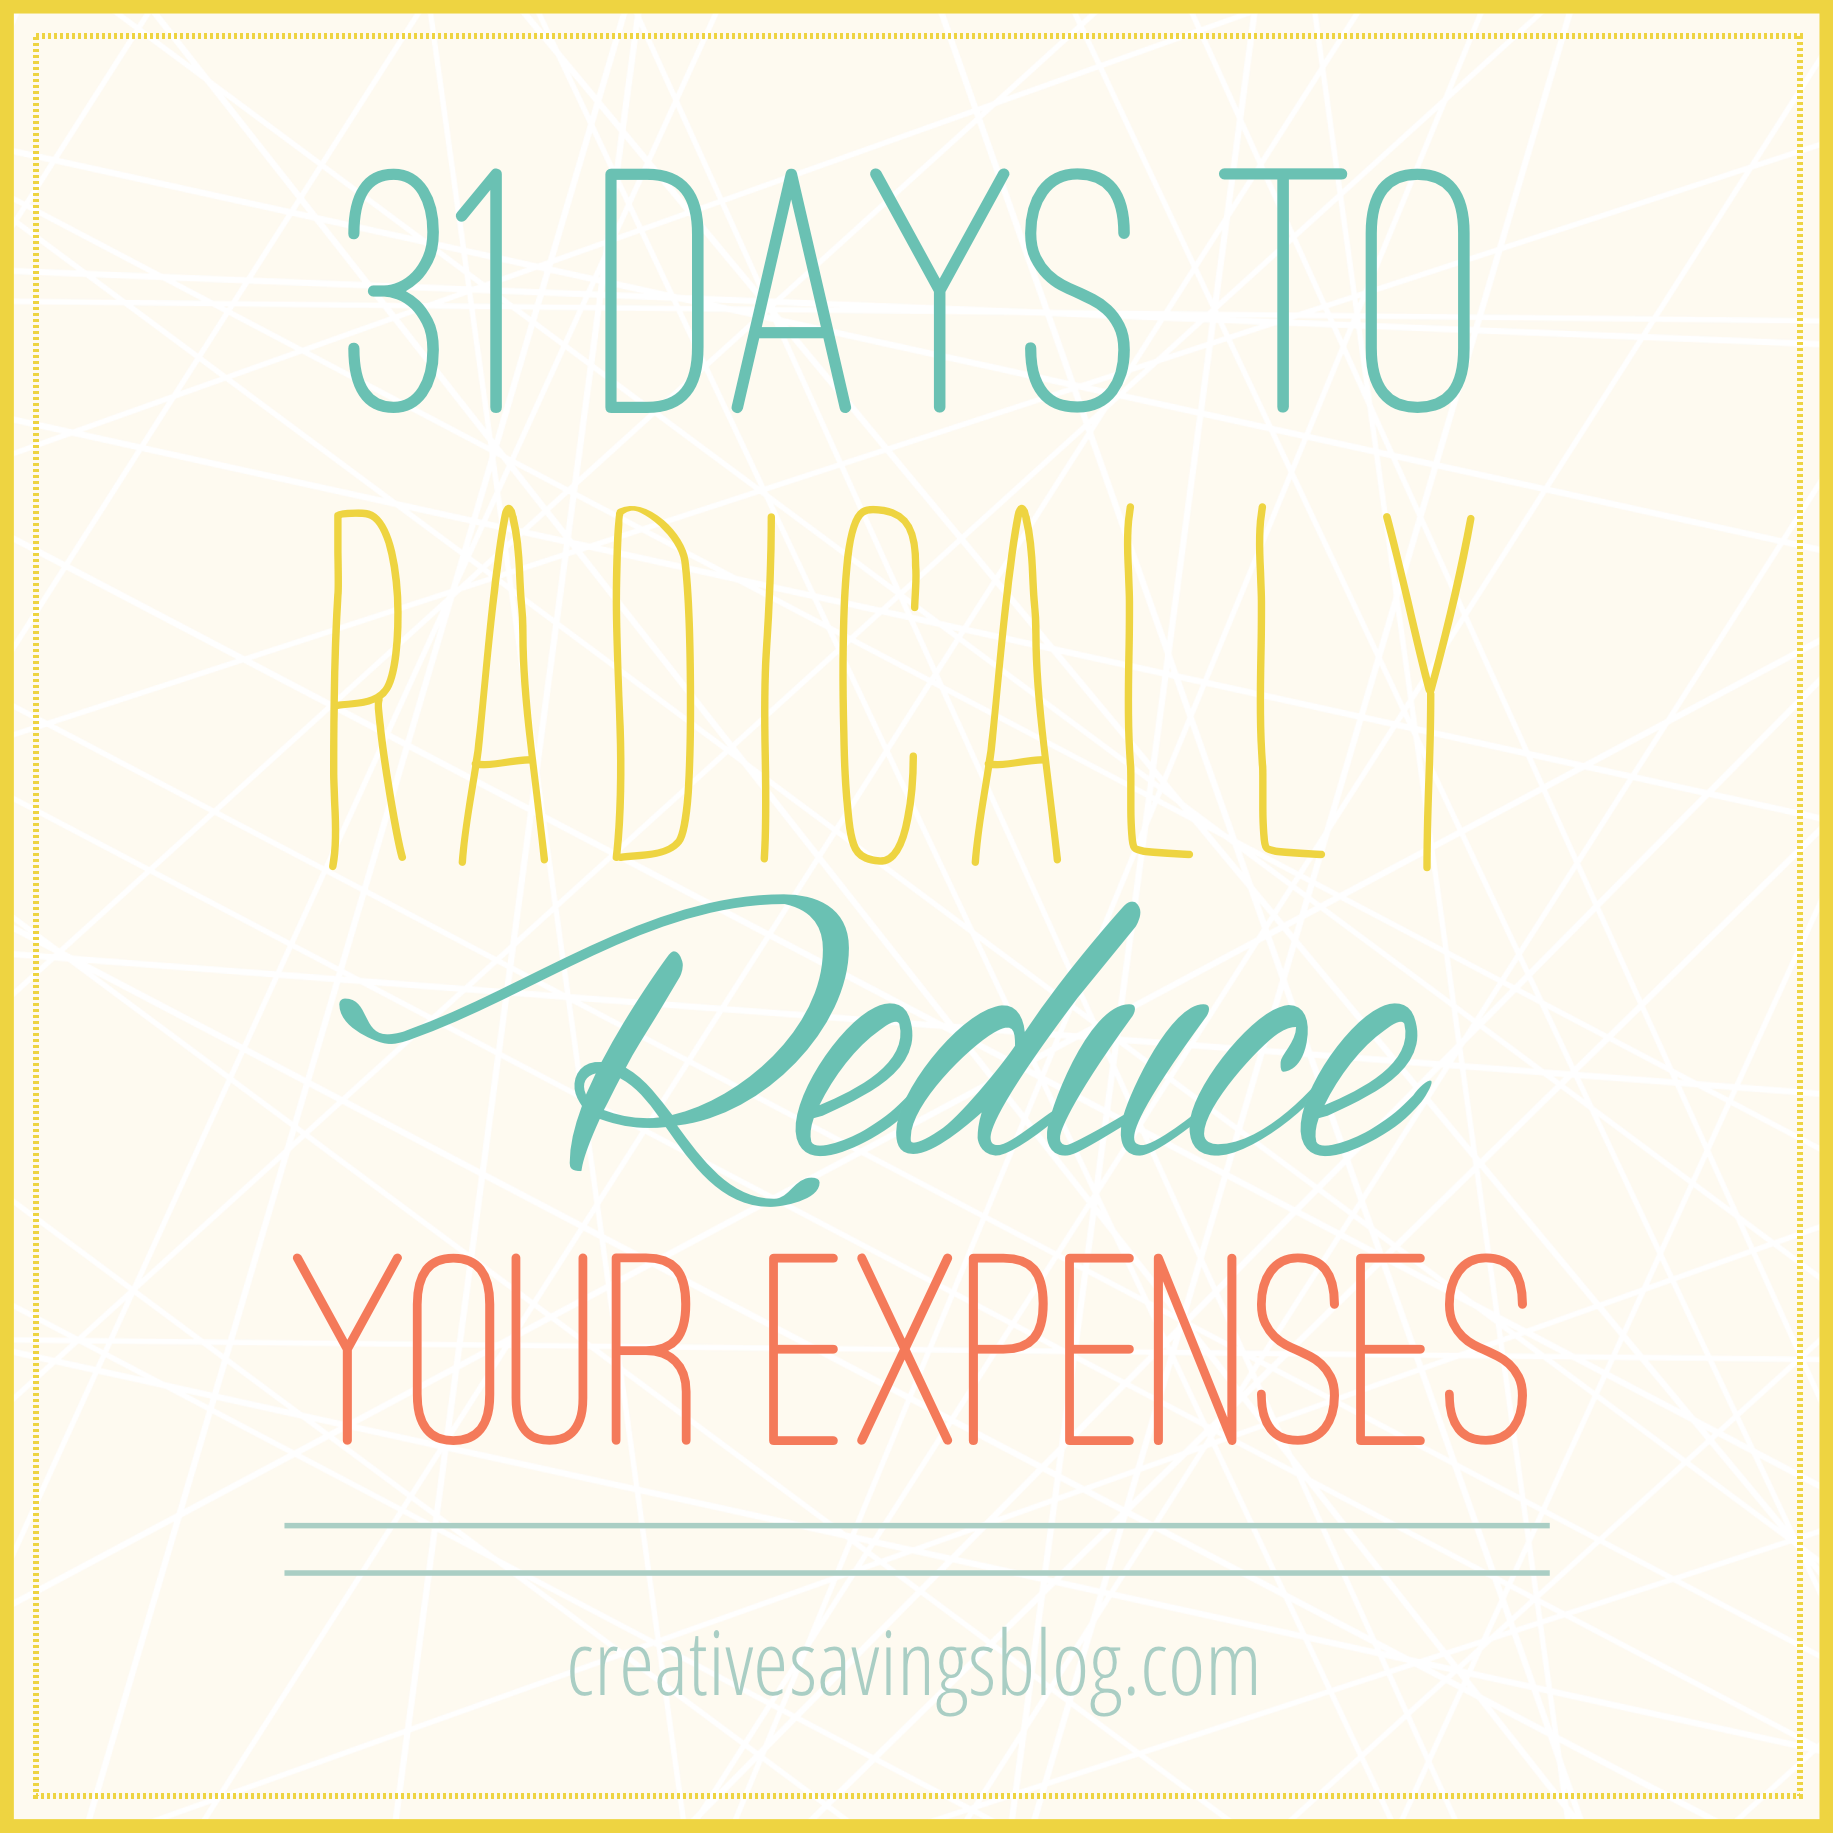 If monthly payments are taking control of your budget, you don't want to miss this 31 Days Series to Radically Reduce Your Expenses.